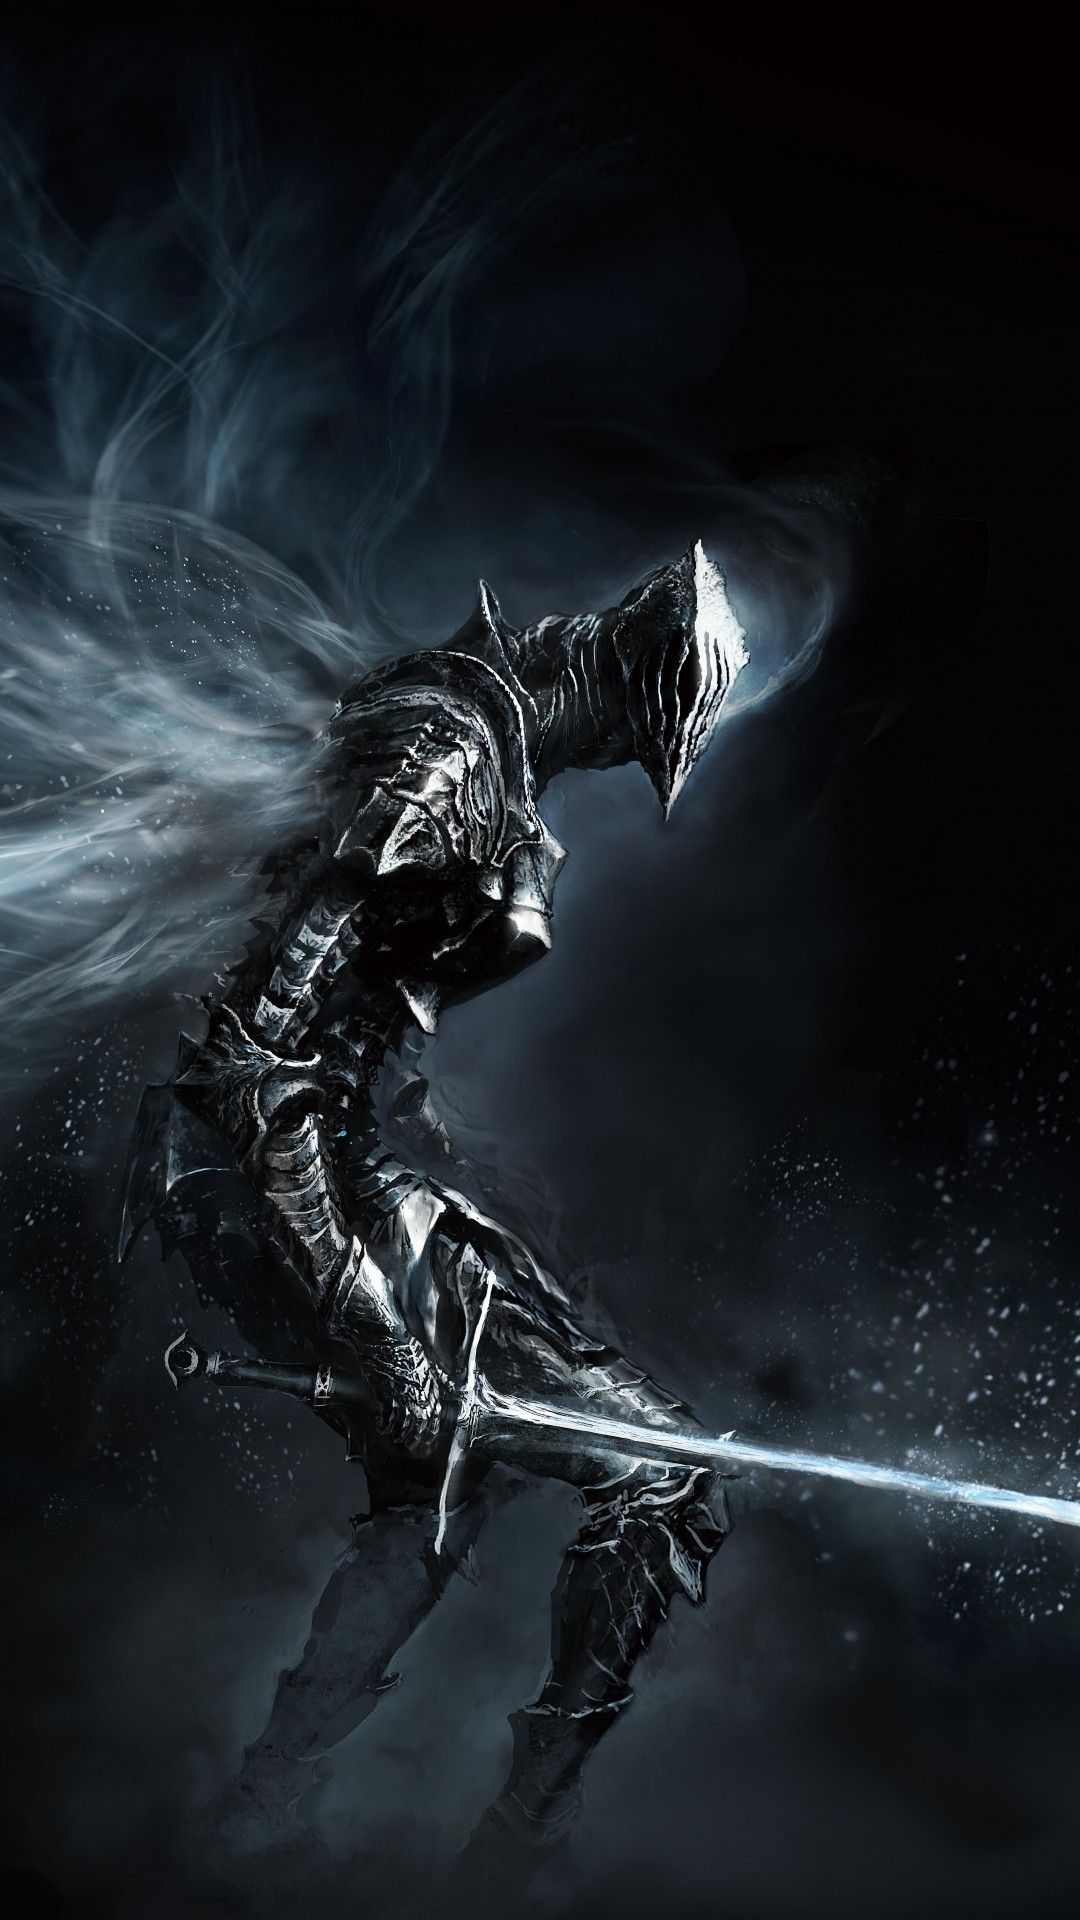 Dark Souls Wallpaper Android In 2020 Dark Souls Wallpaper Dark Souls Android Wallpaper